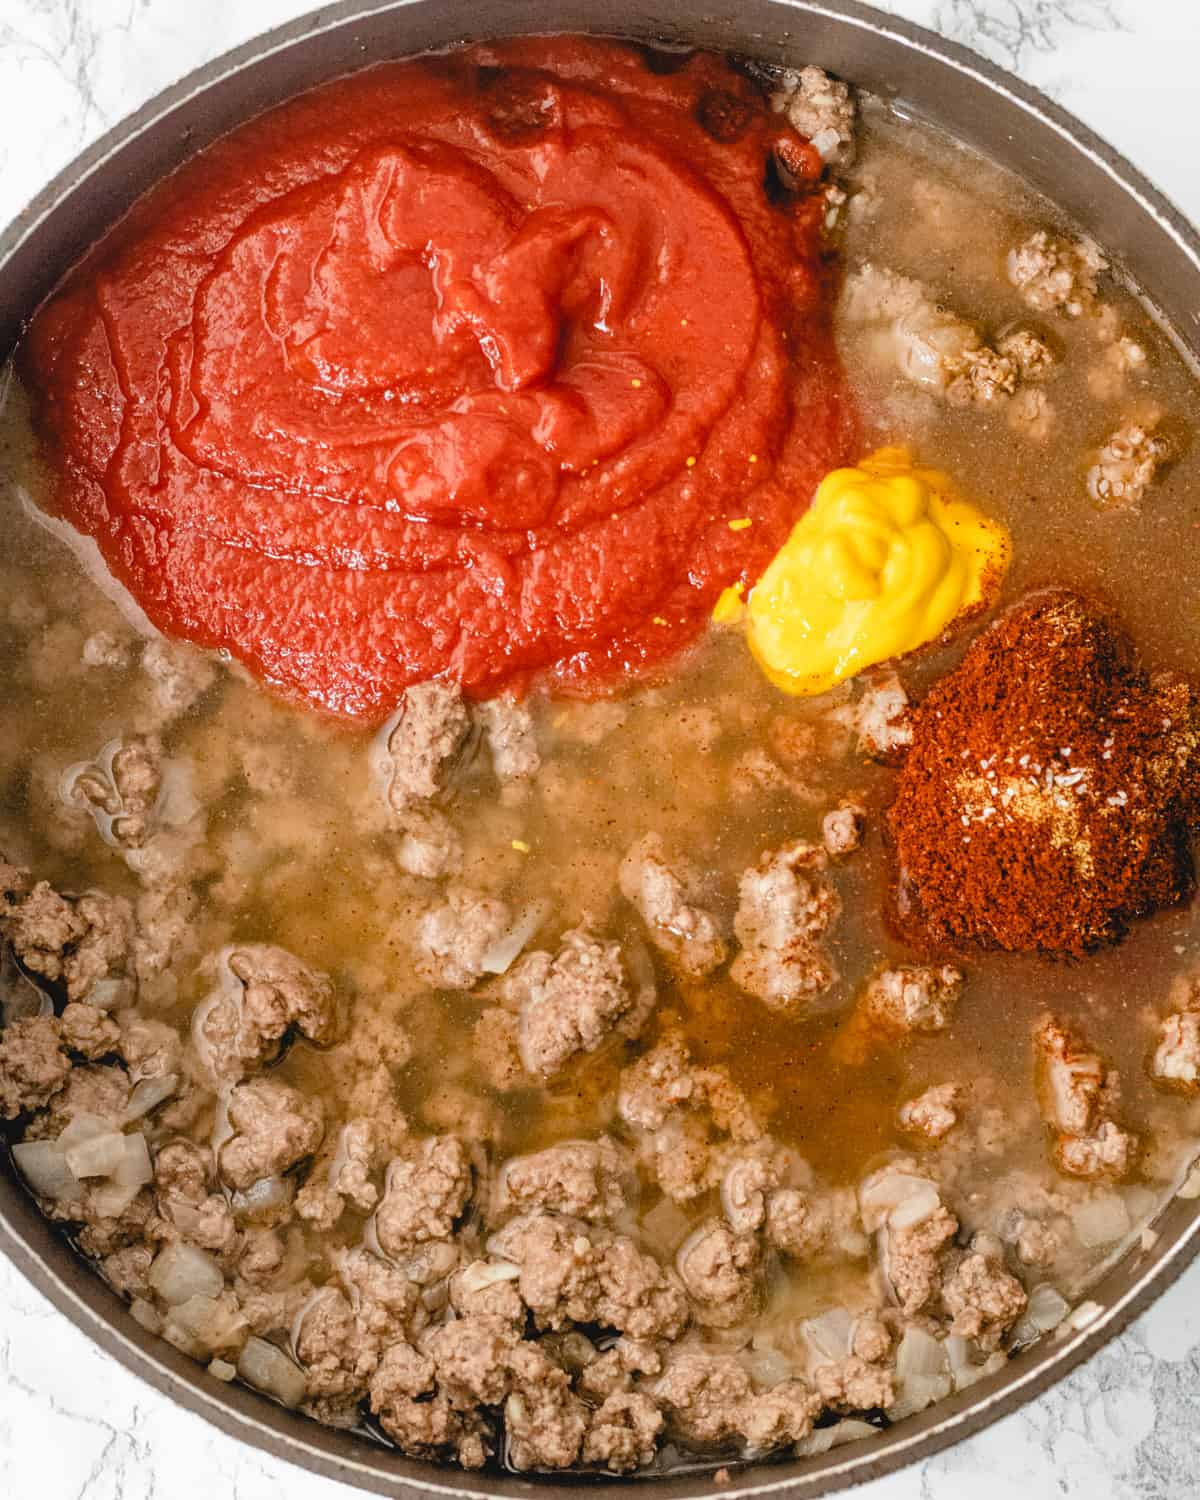 Tomato puree, spices, and other ingredients in the pan with cooked beef.